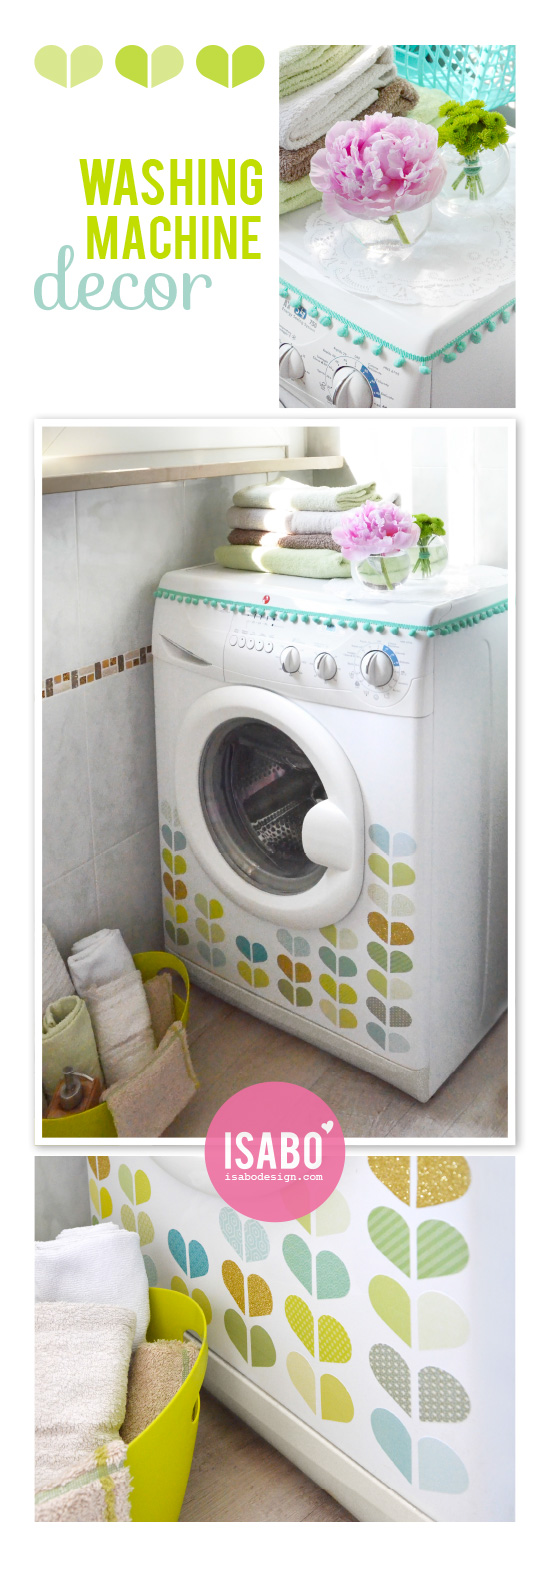 isabo-marinozzi-lavatrice-decor-washing-machine